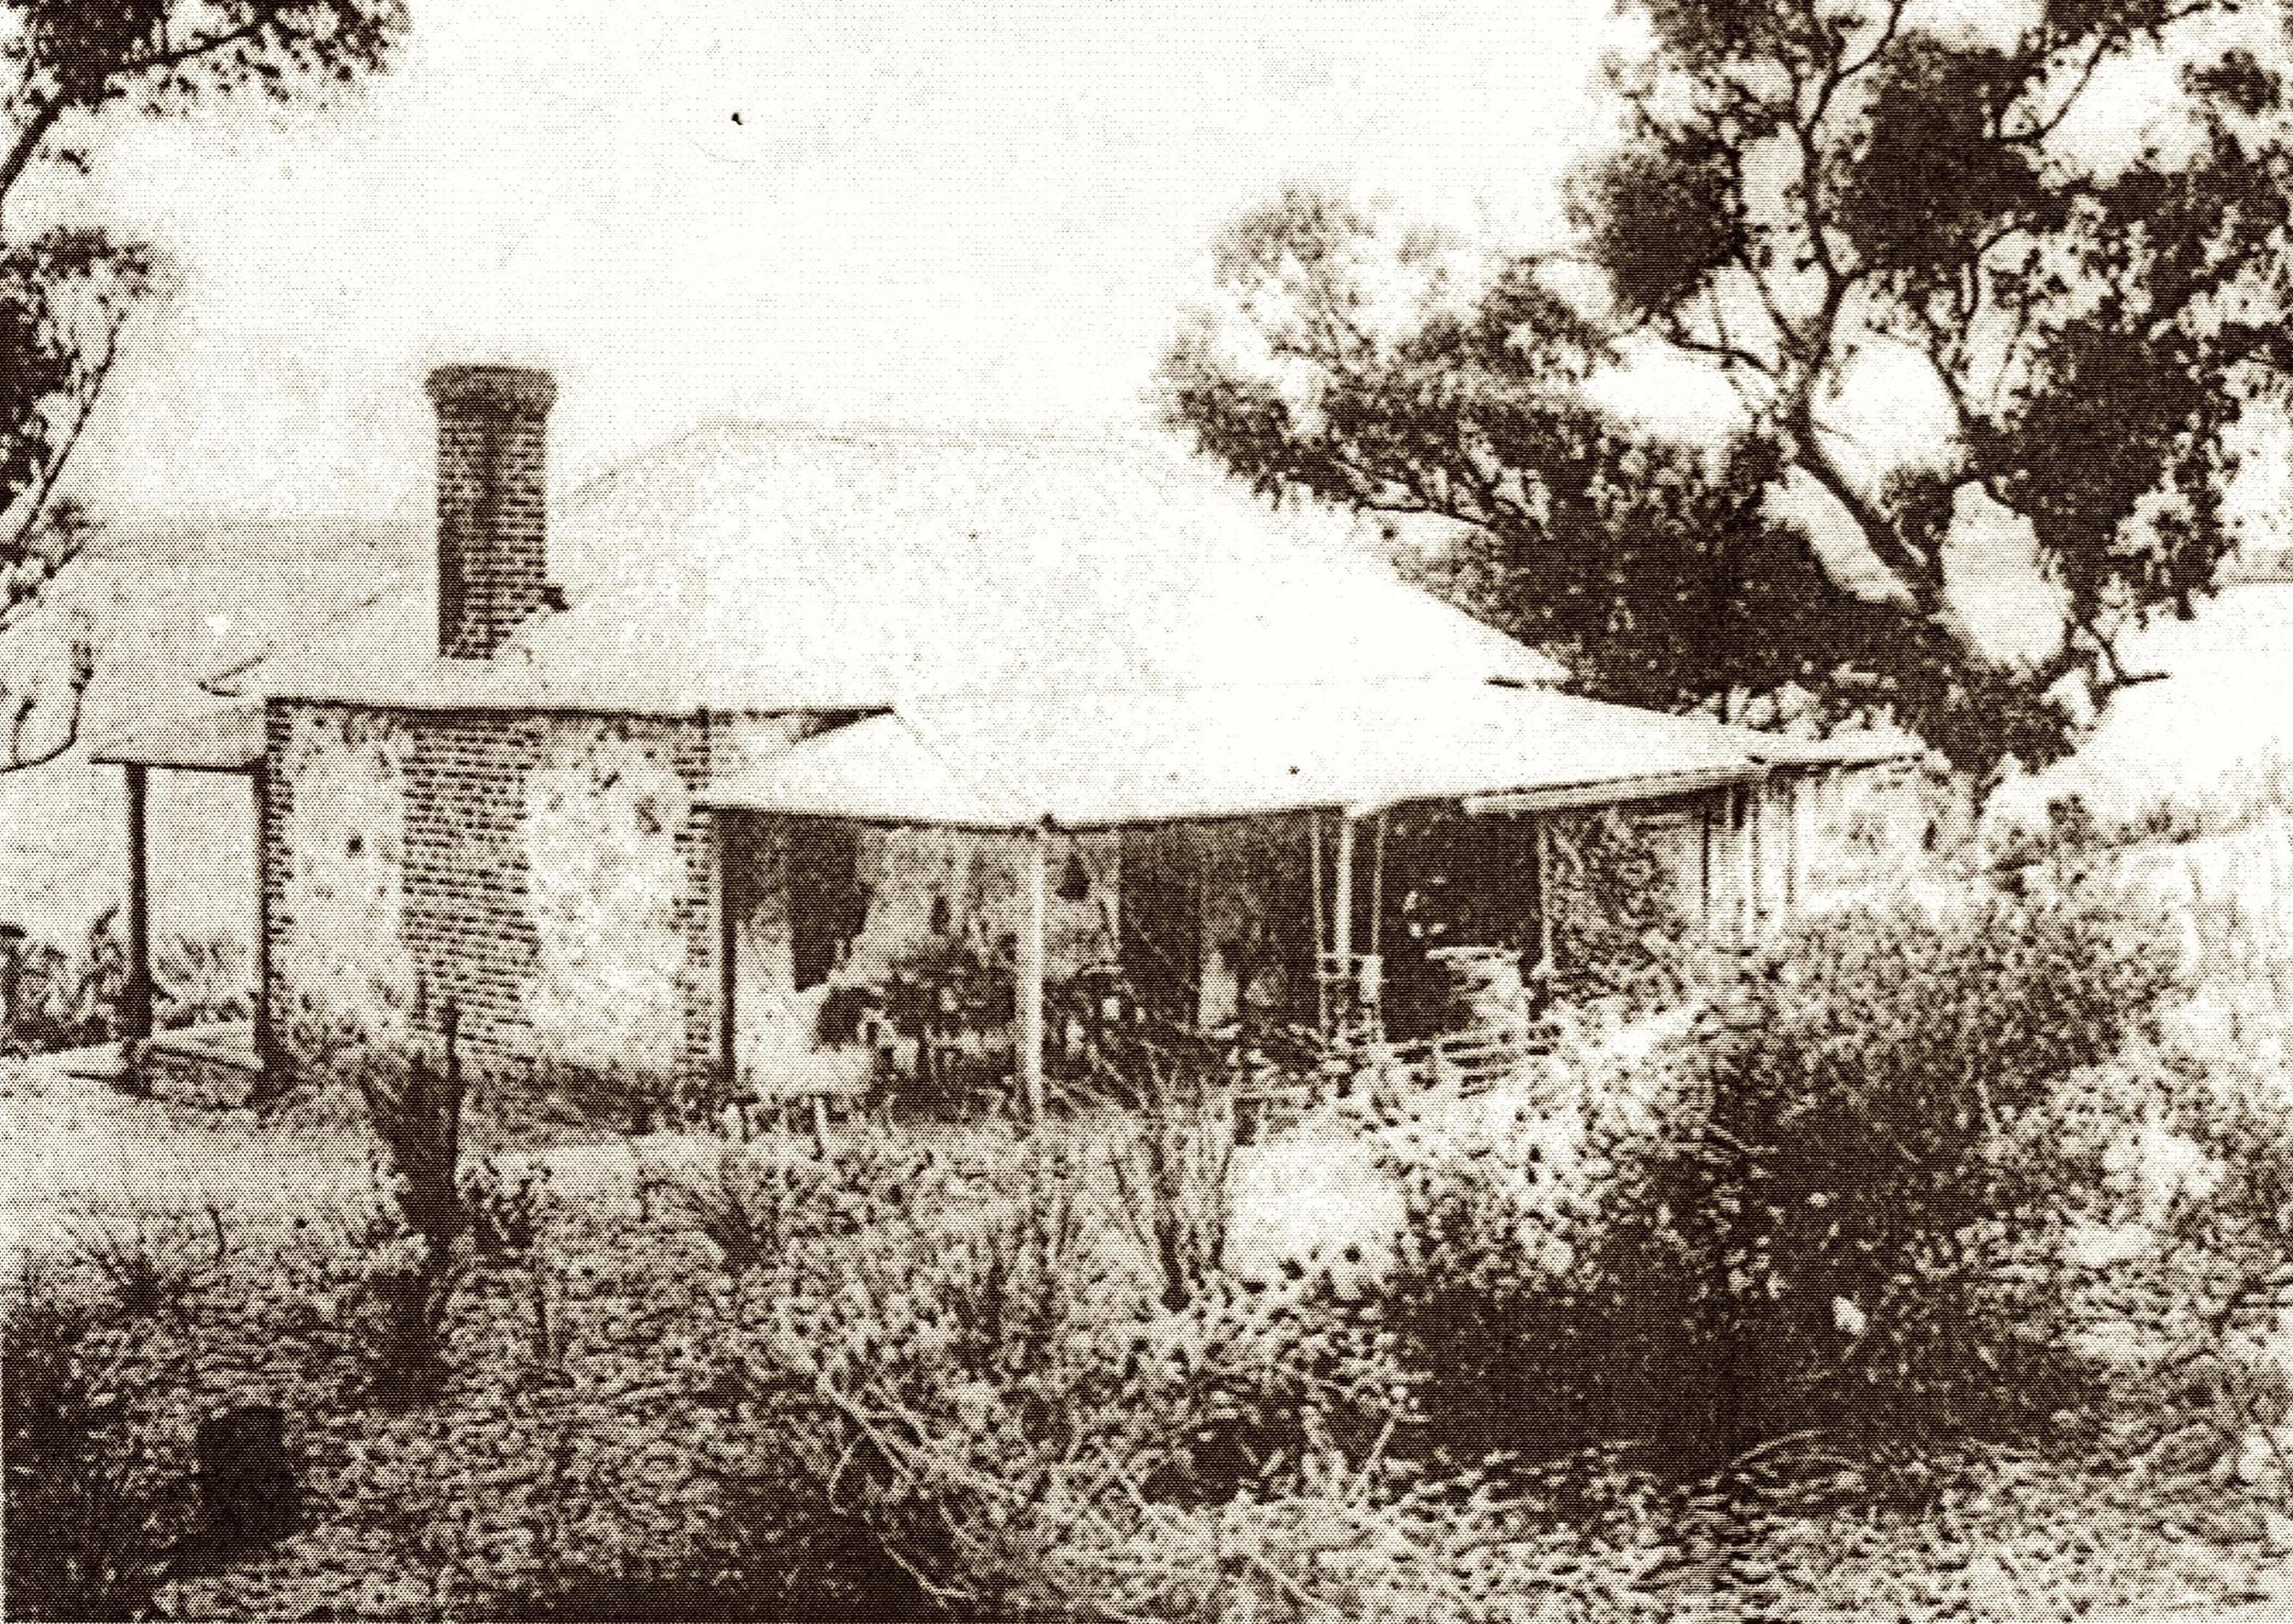 The Fox's cottage, within the grounds of Gallop House Dalkeith